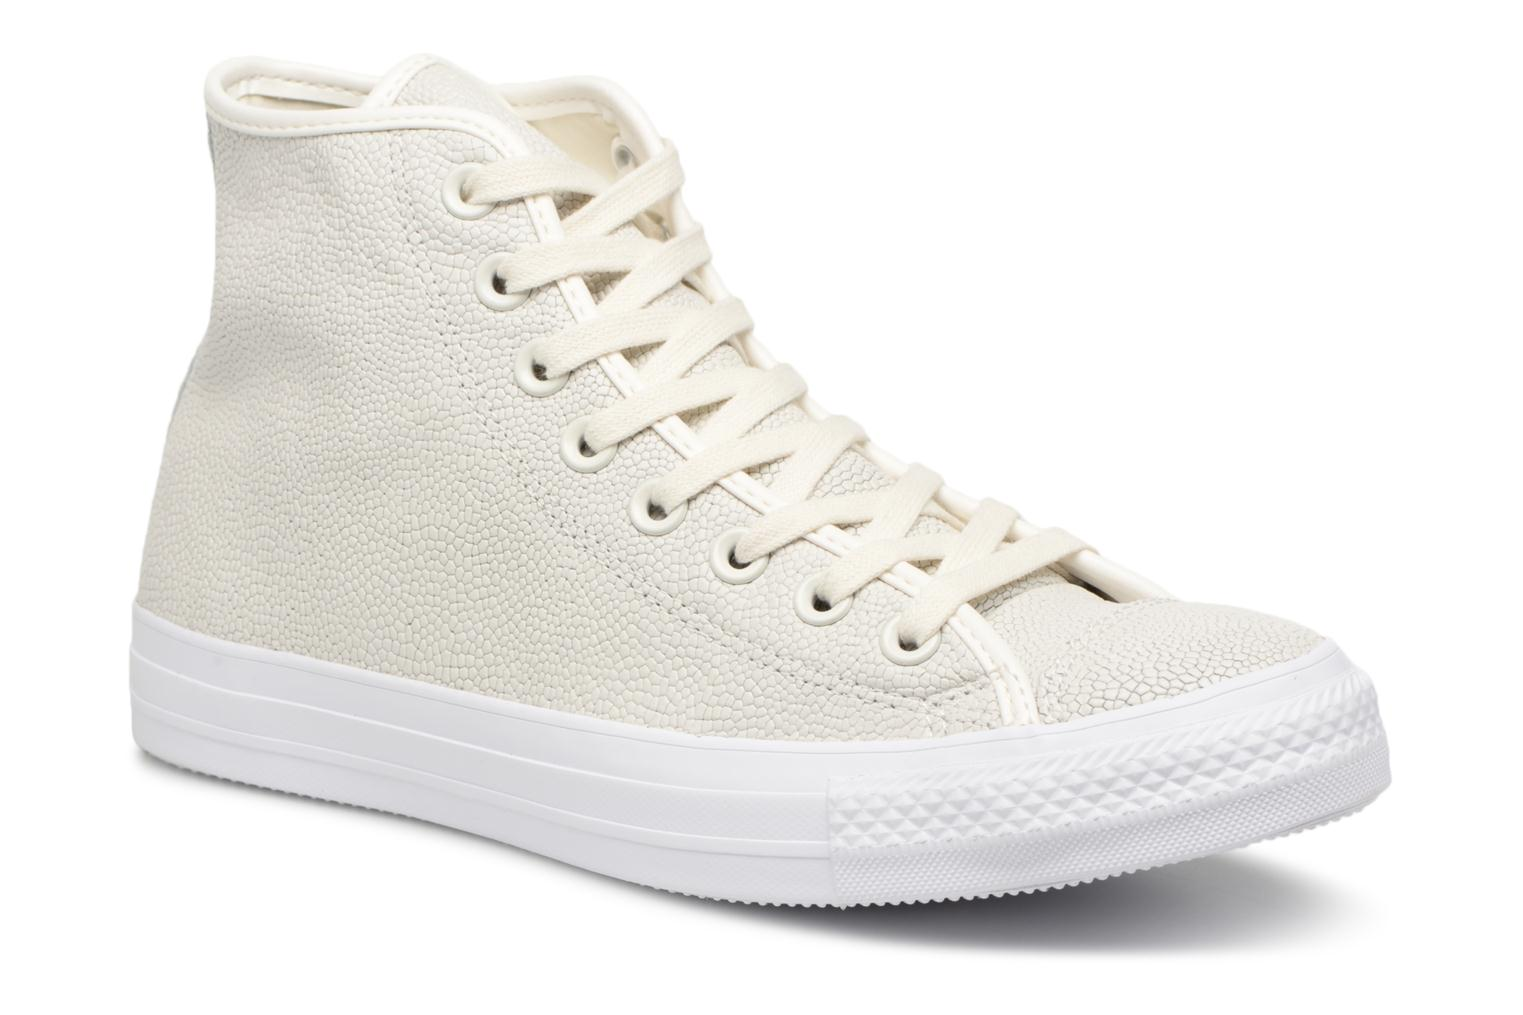 new product df366 20119 Baskets Converse Chuck Taylor All Star Hi W Blanc vue détail paire